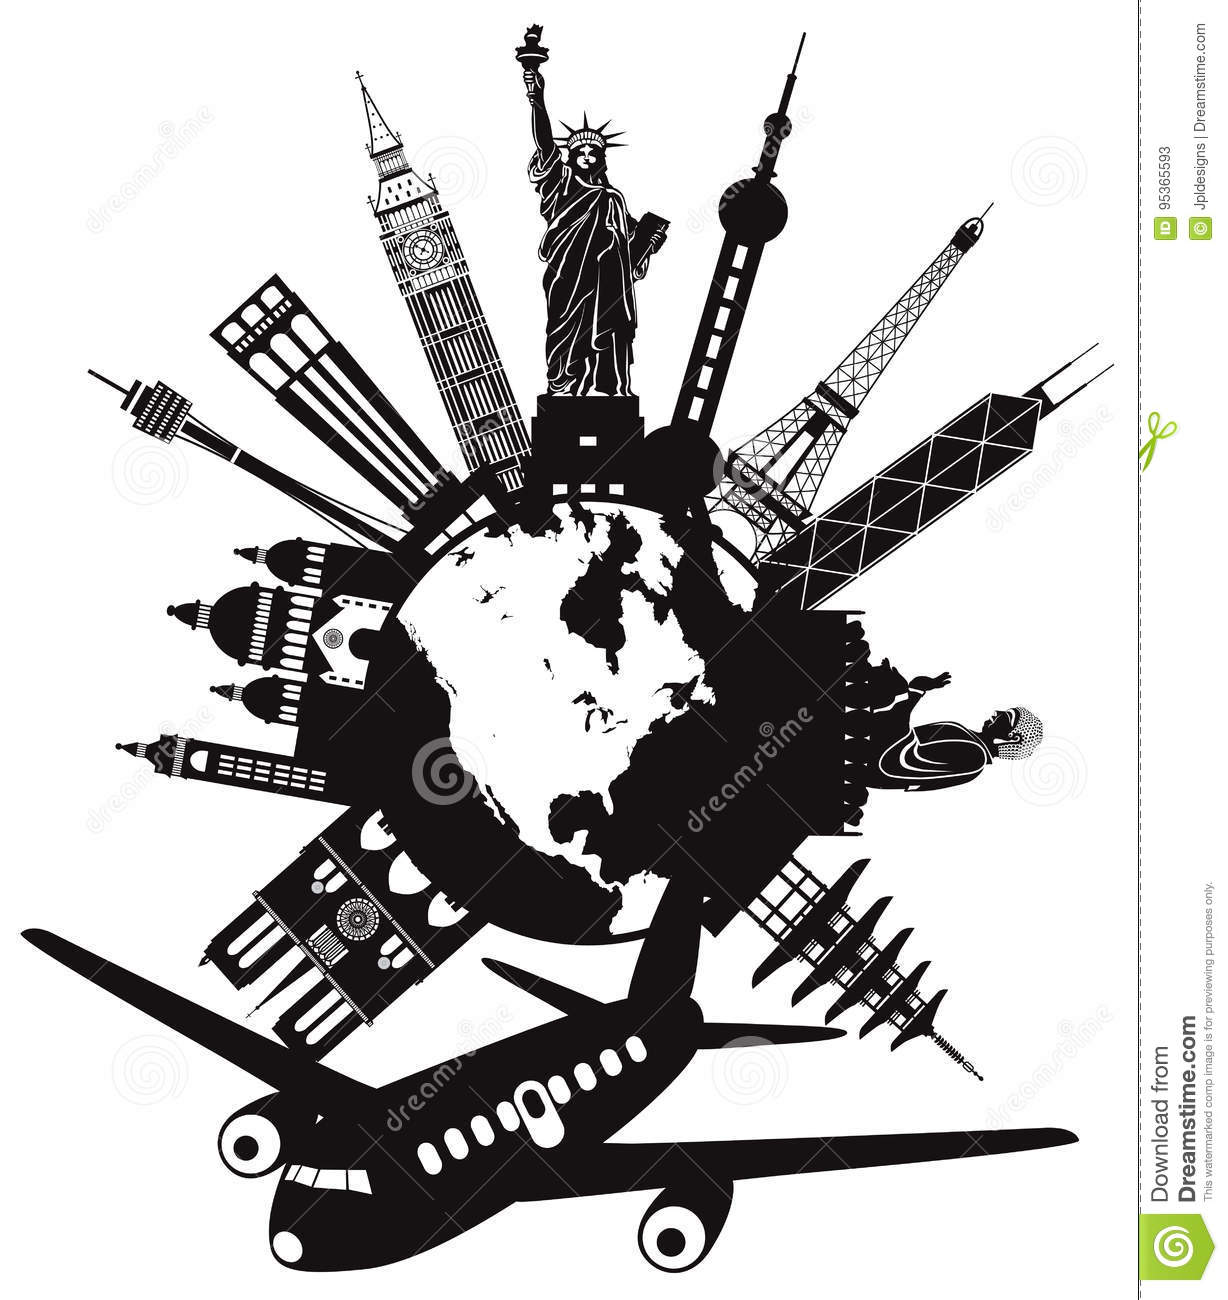 Traveling clipart black and white clipart freeuse library Travel clipart black and white 5 » Clipart Station clipart freeuse library